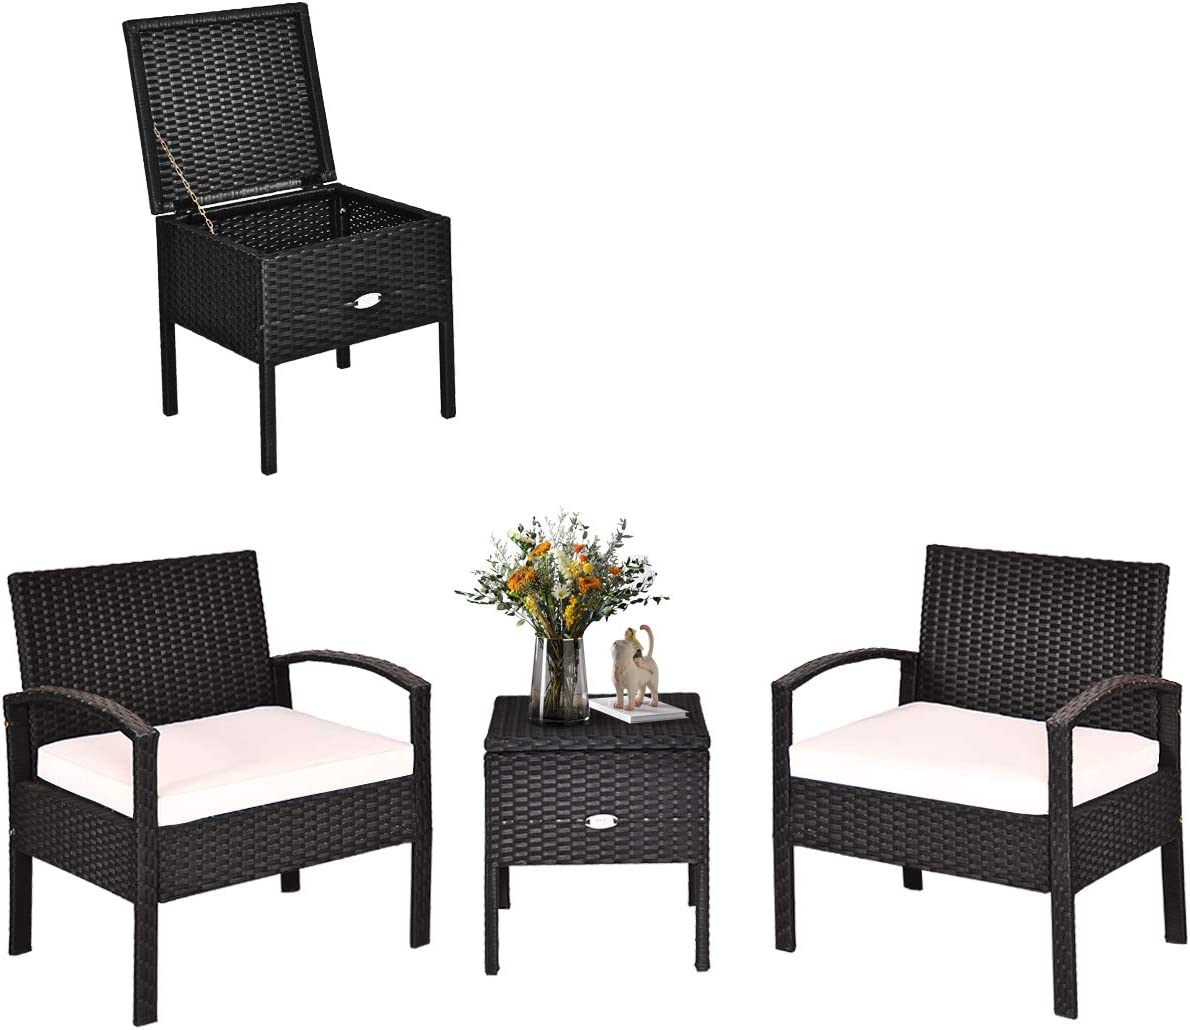 Tangkula 3 Piece Patio Wicker Conversation Set, Outdoor Rattan Furniture with Washable Thick Cushion & Coffee Table w/Storage Space, Patio Furniture Set for Backyard Porch Garden Poolside (Black)